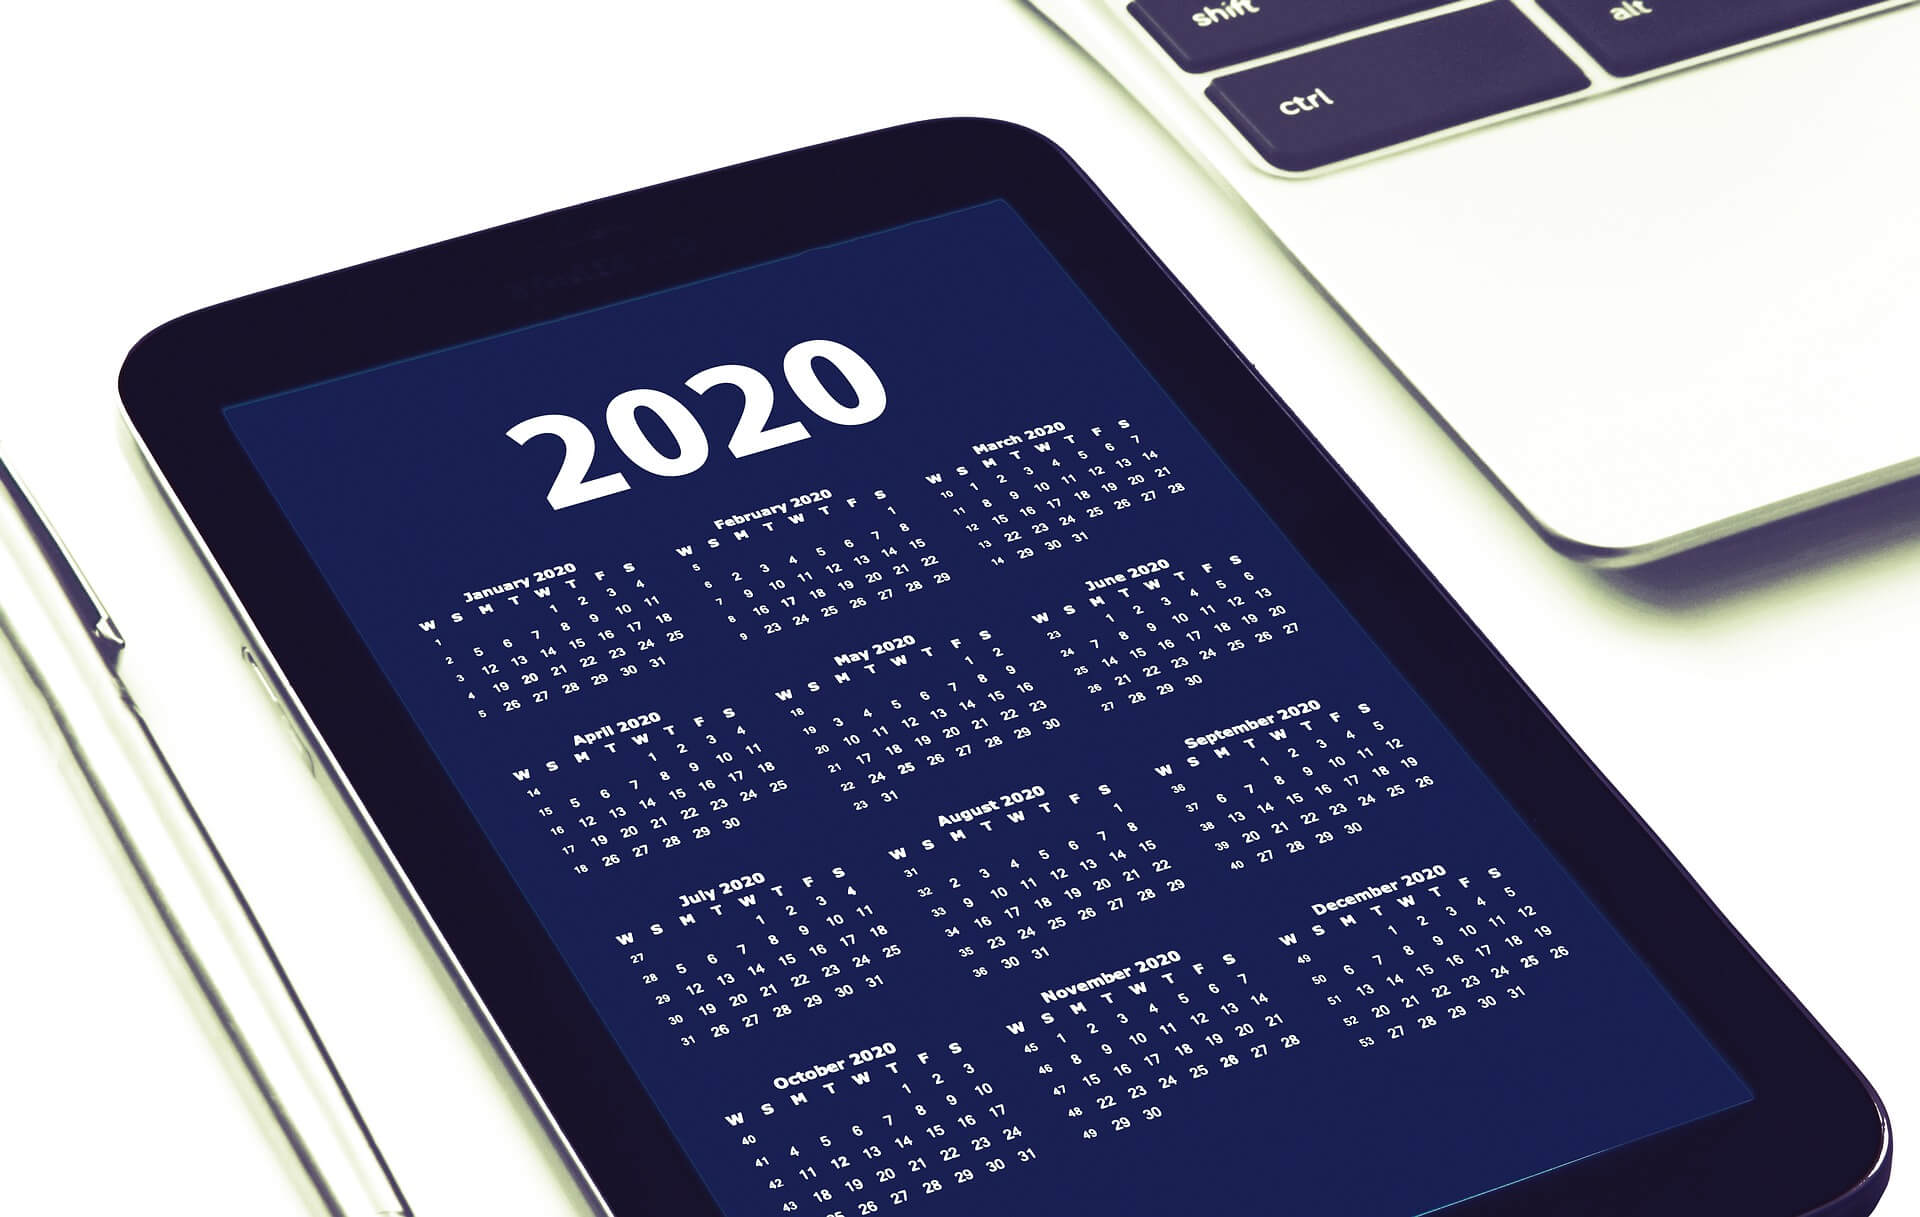 Here's The 1099 Changes for 2020 You Need To Be Aware Of